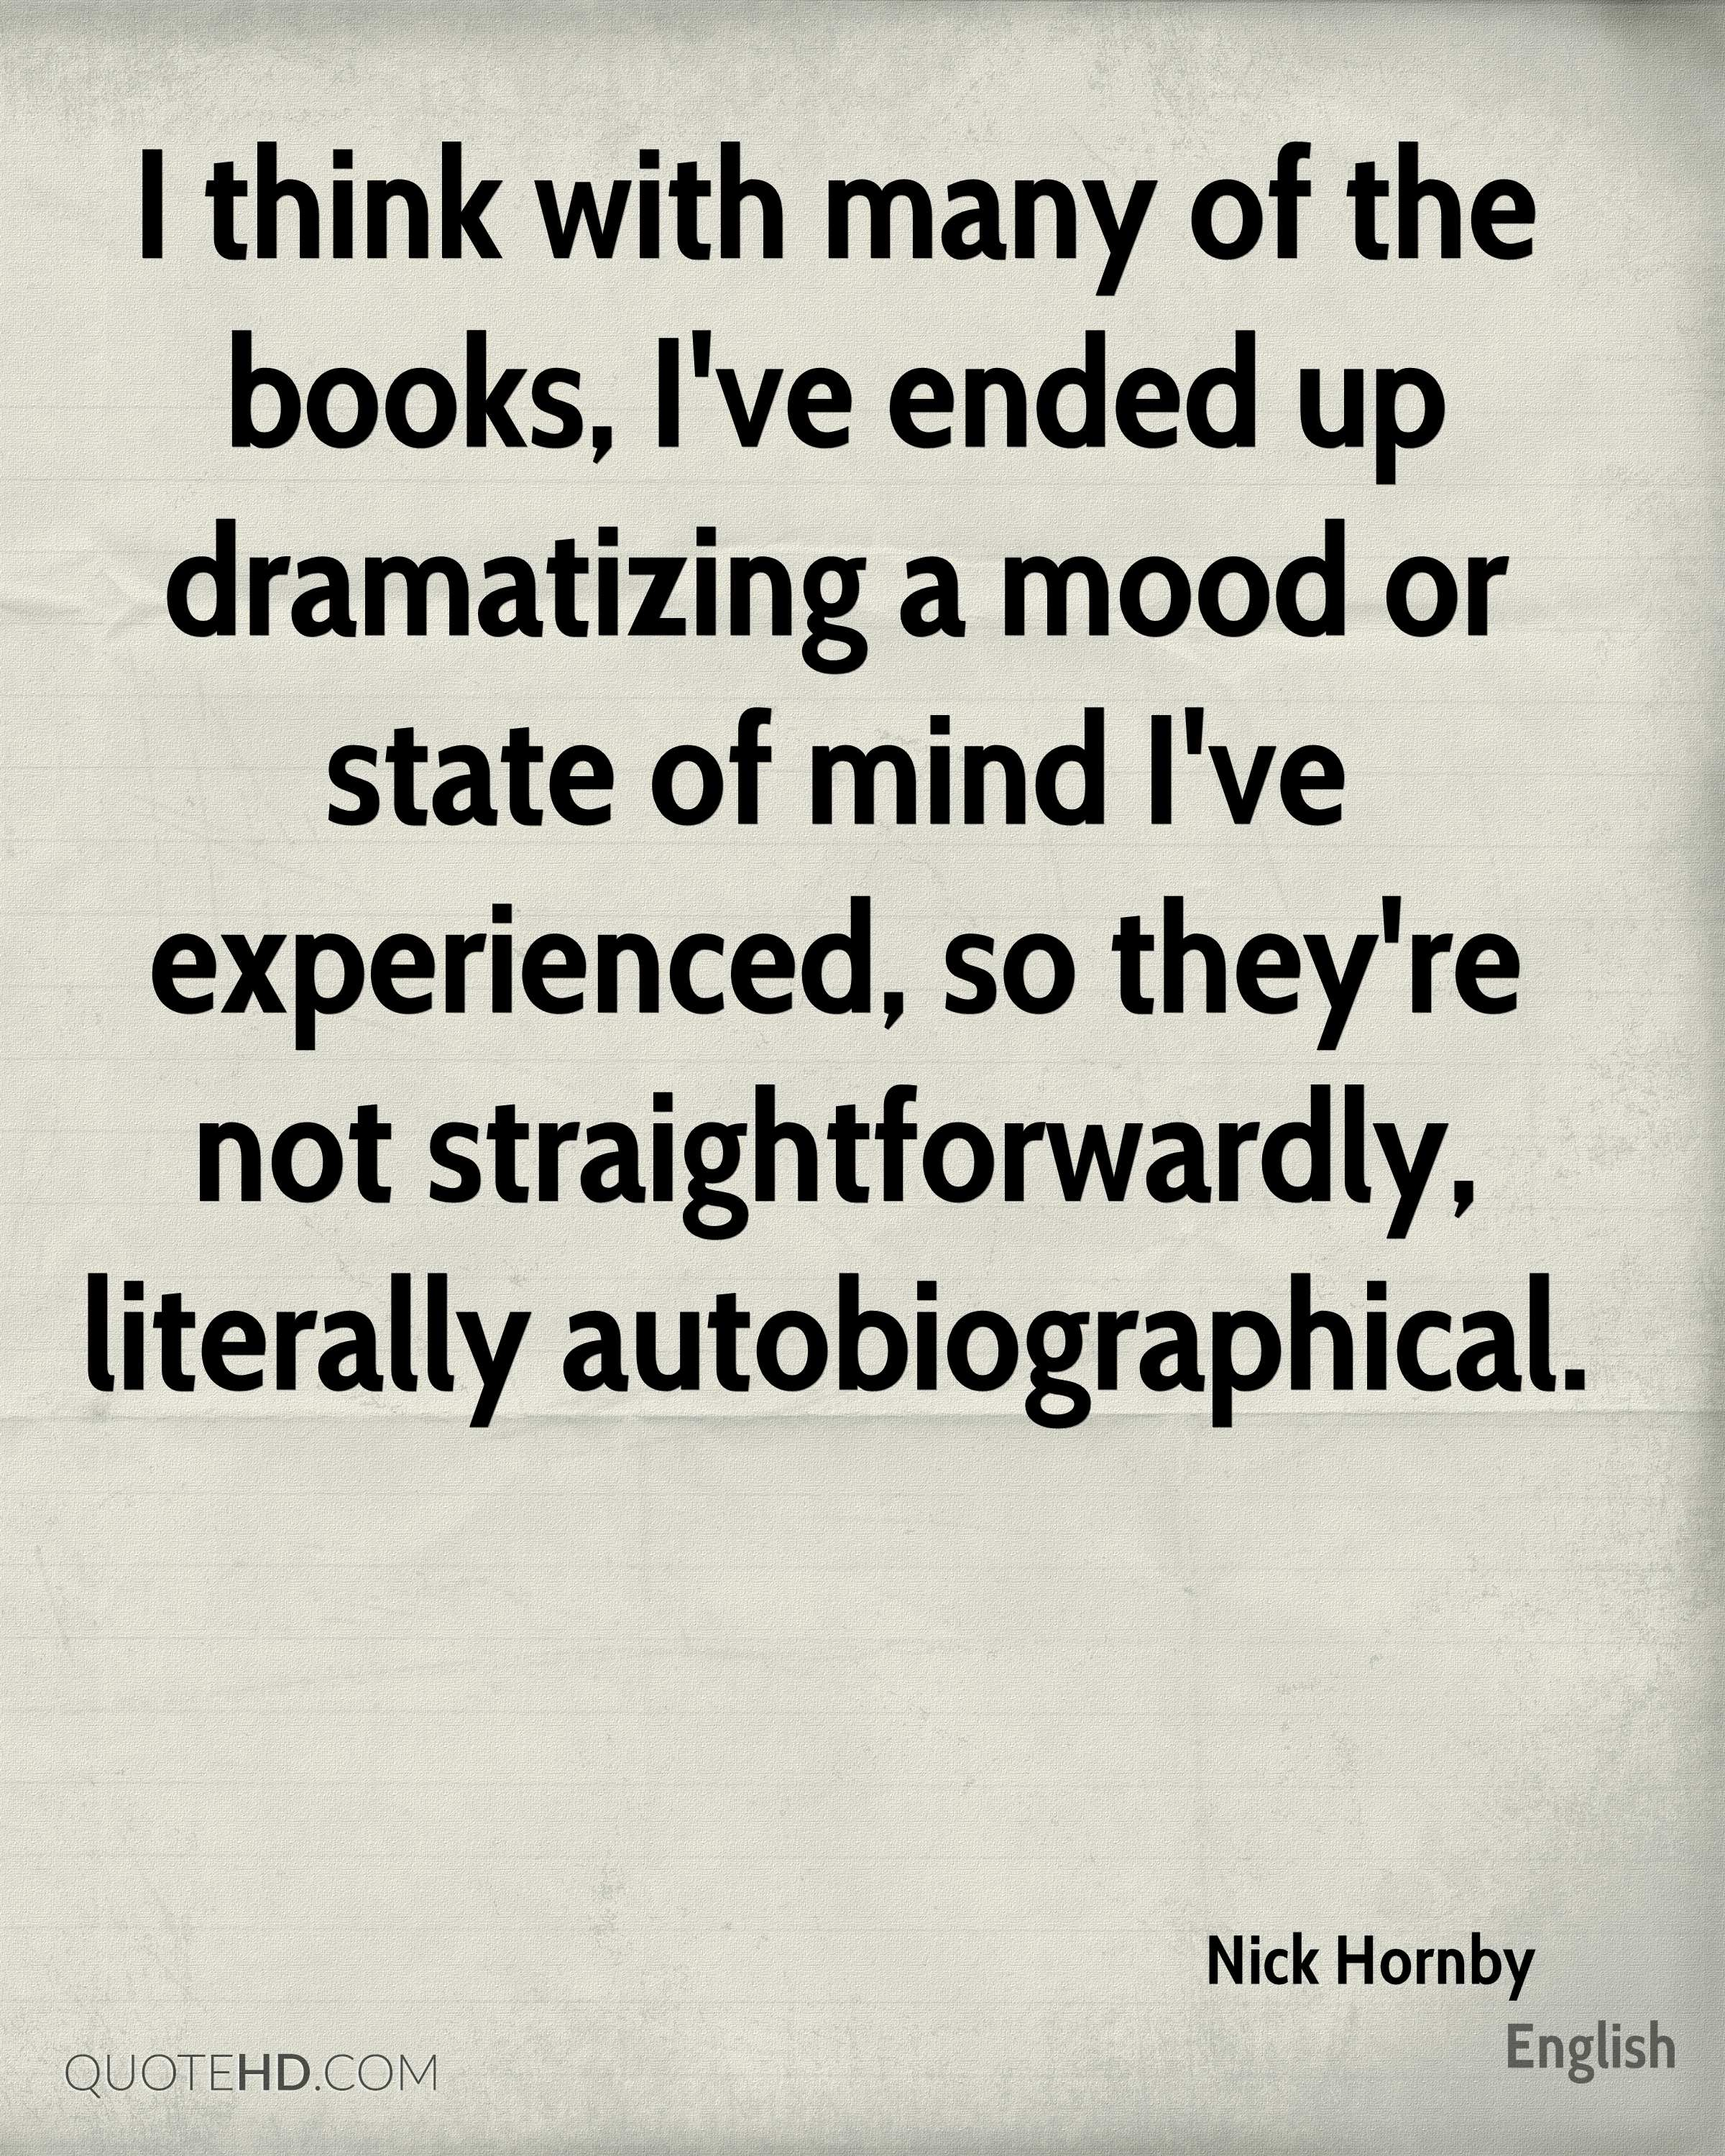 I think with many of the books, I've ended up dramatizing a mood or state of mind I've experienced, so they're not straightforwardly, literally autobiographical.